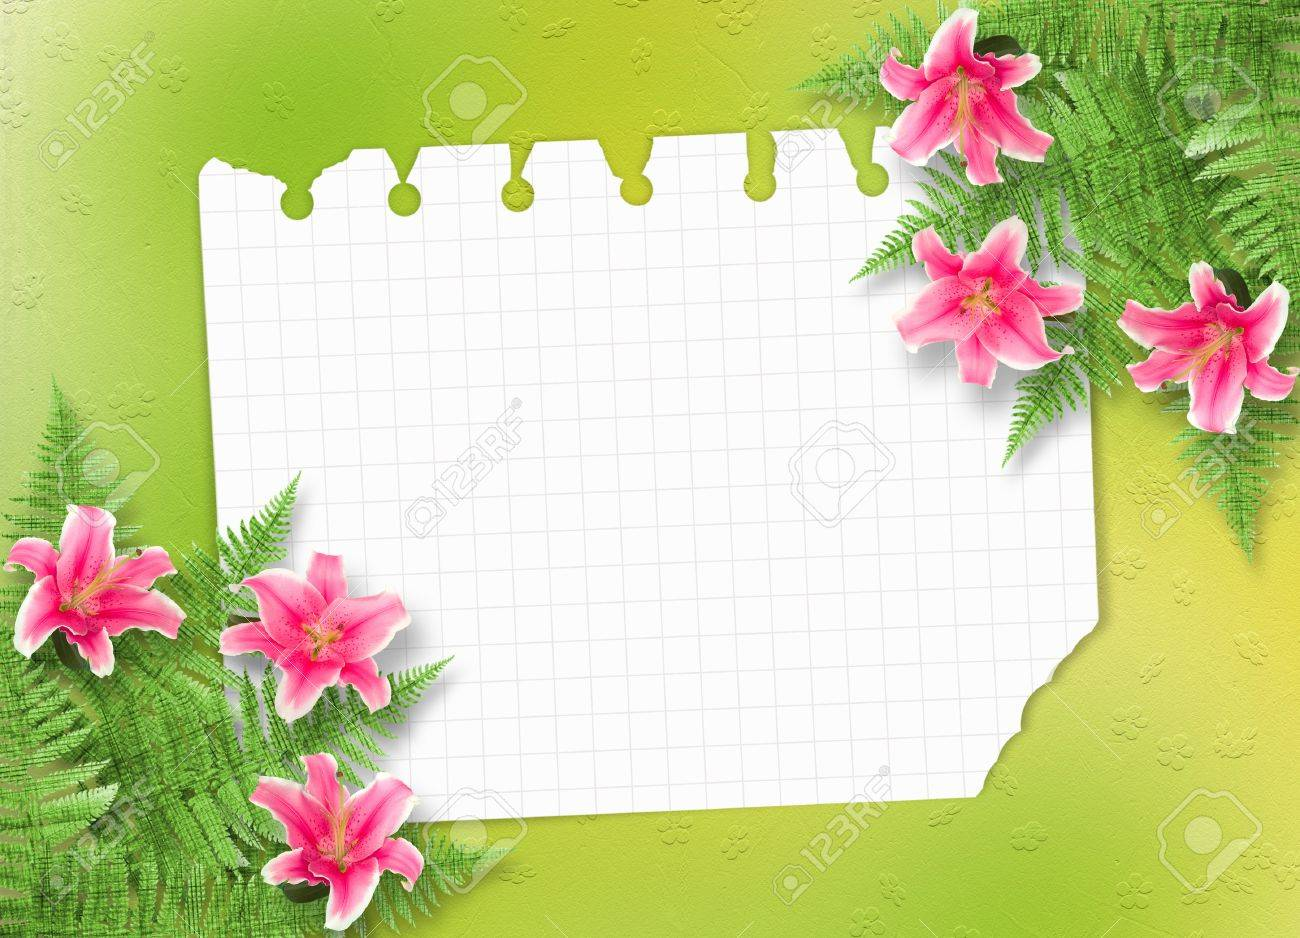 Card for invitation or congratulation with pink lilies Stock Photo - 9035656